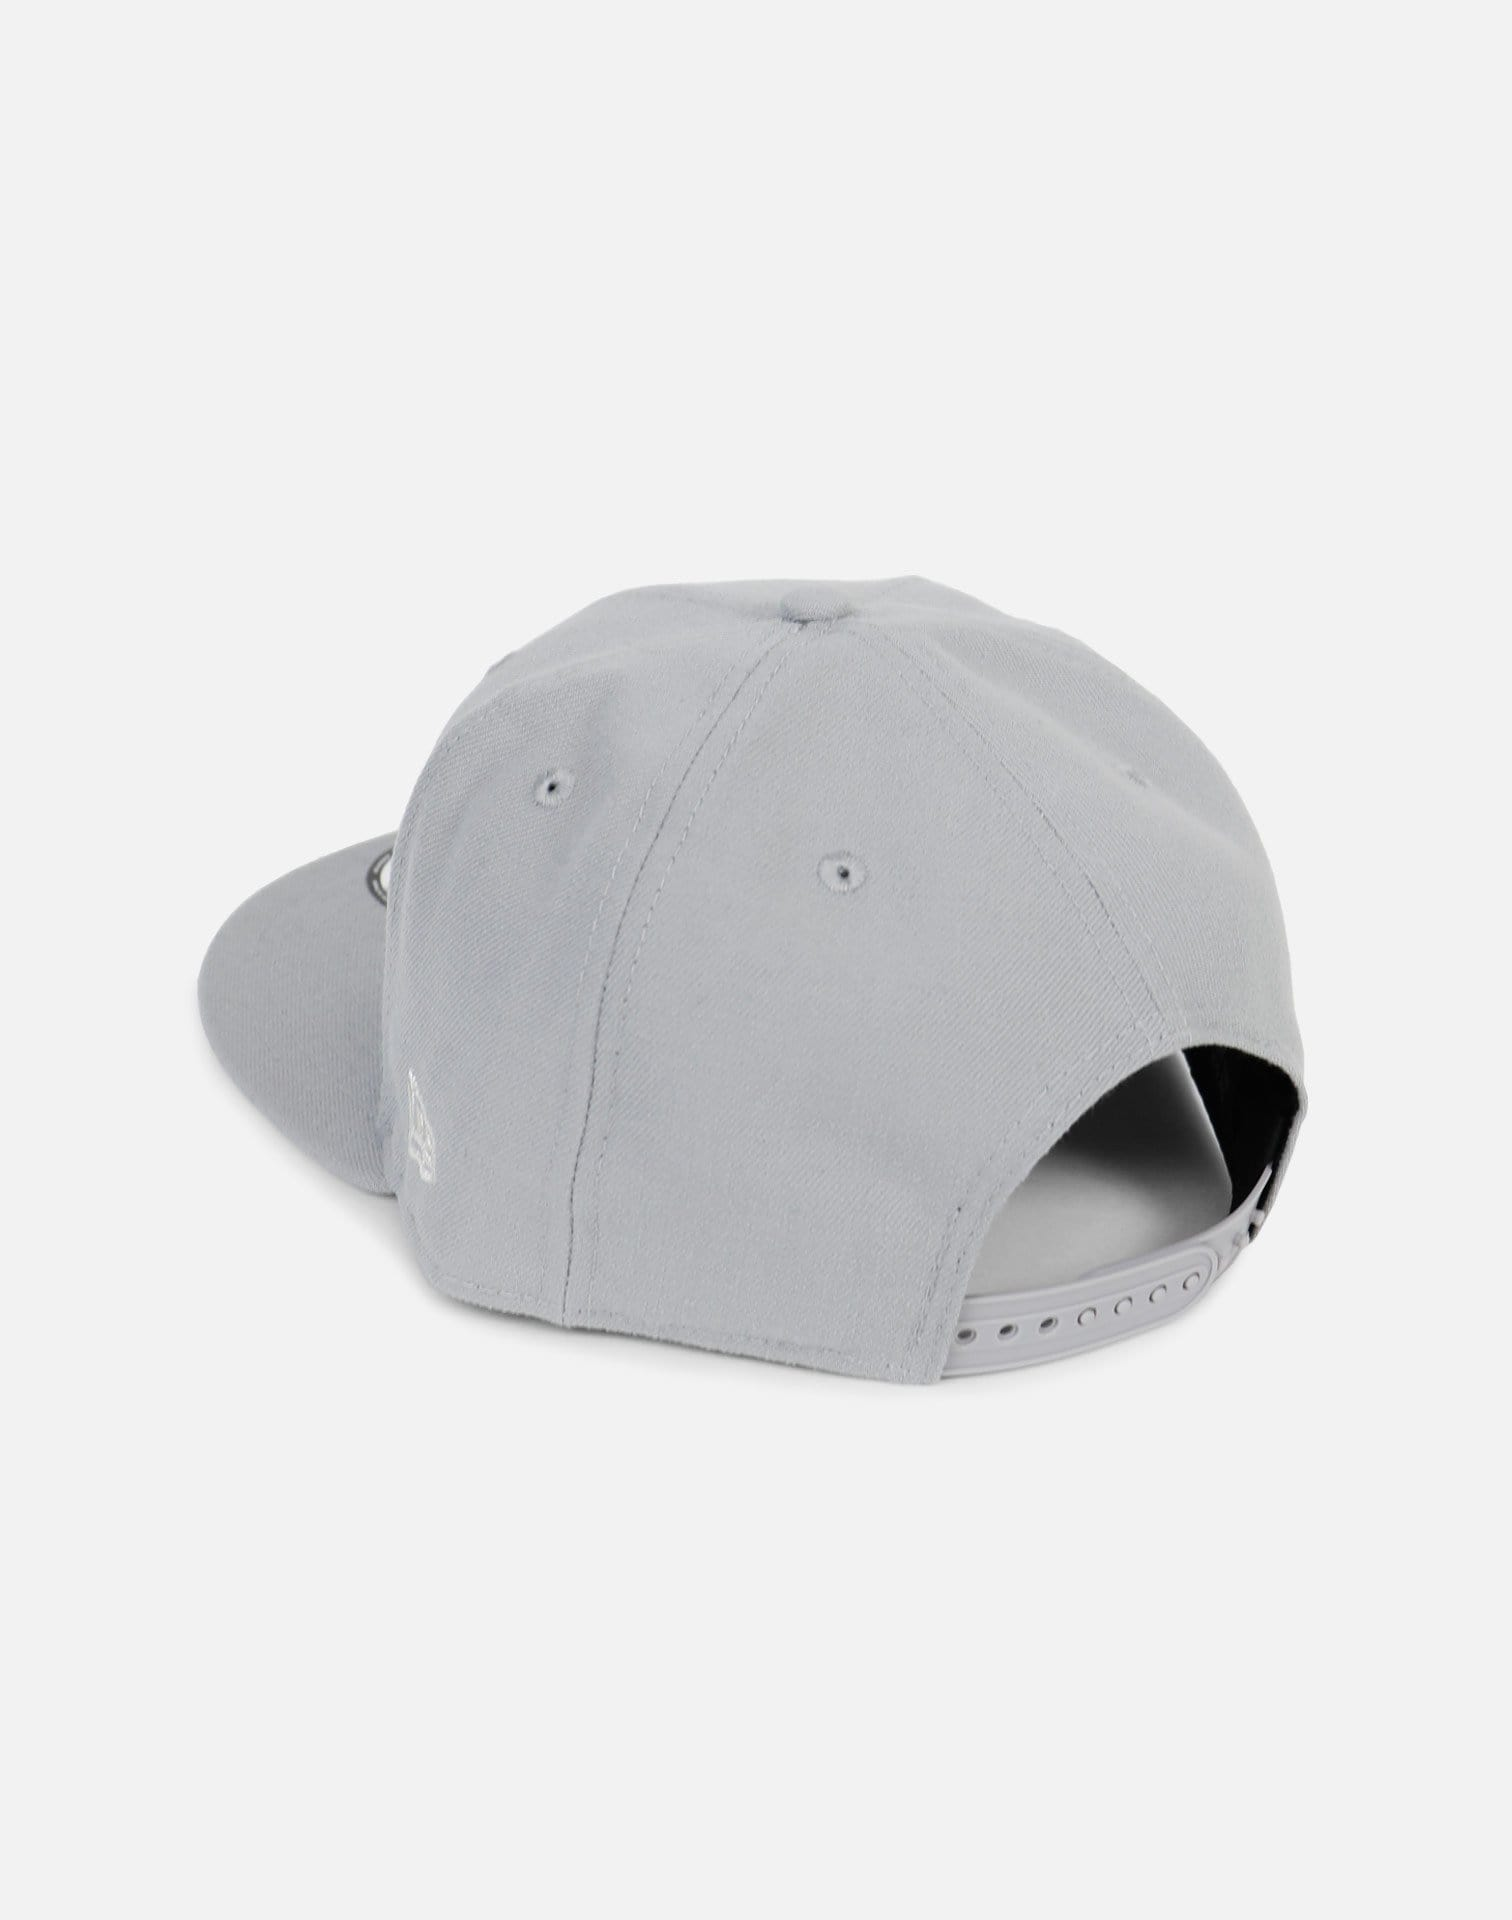 New Era Minnesota Timberwolves 'Pure Money' Snapback Hat